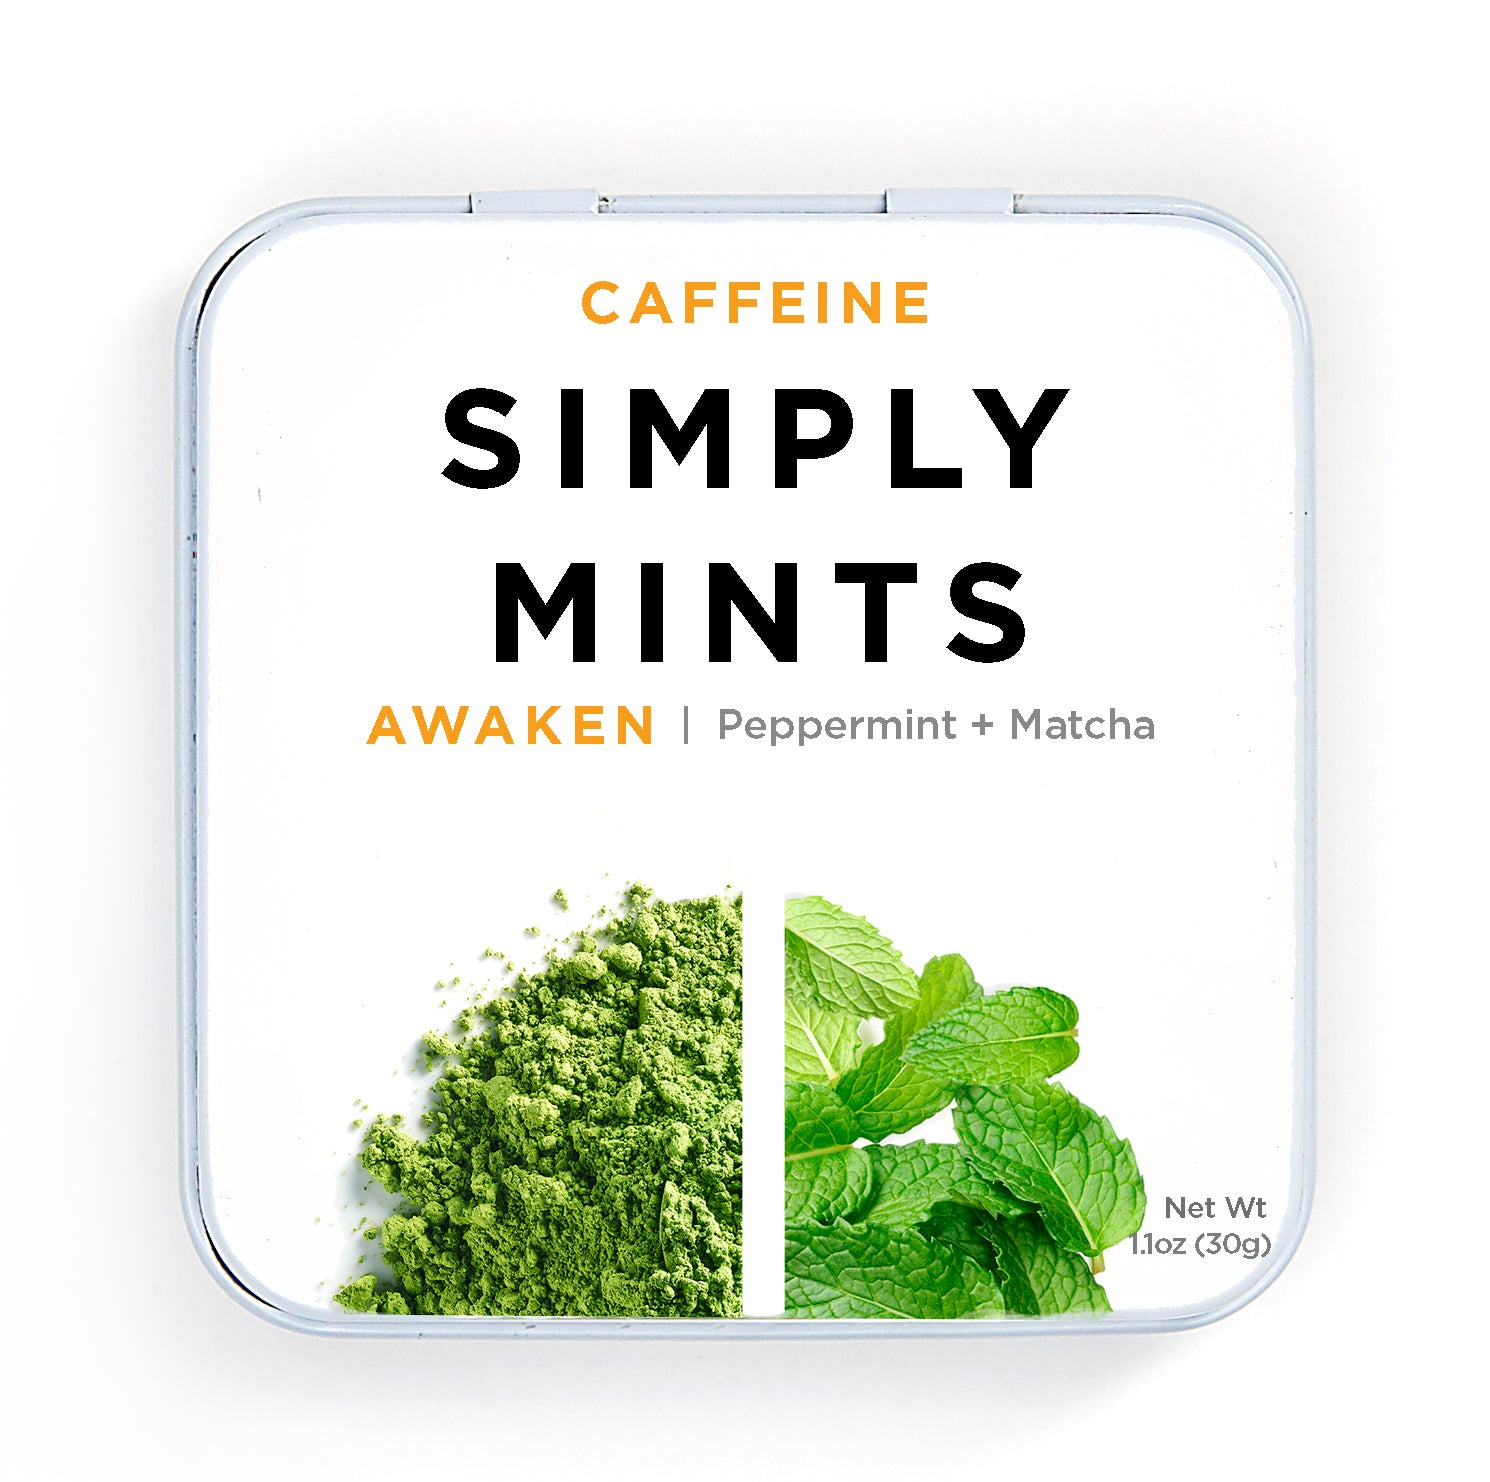 Simply Mints: Awaken (Caffeine)